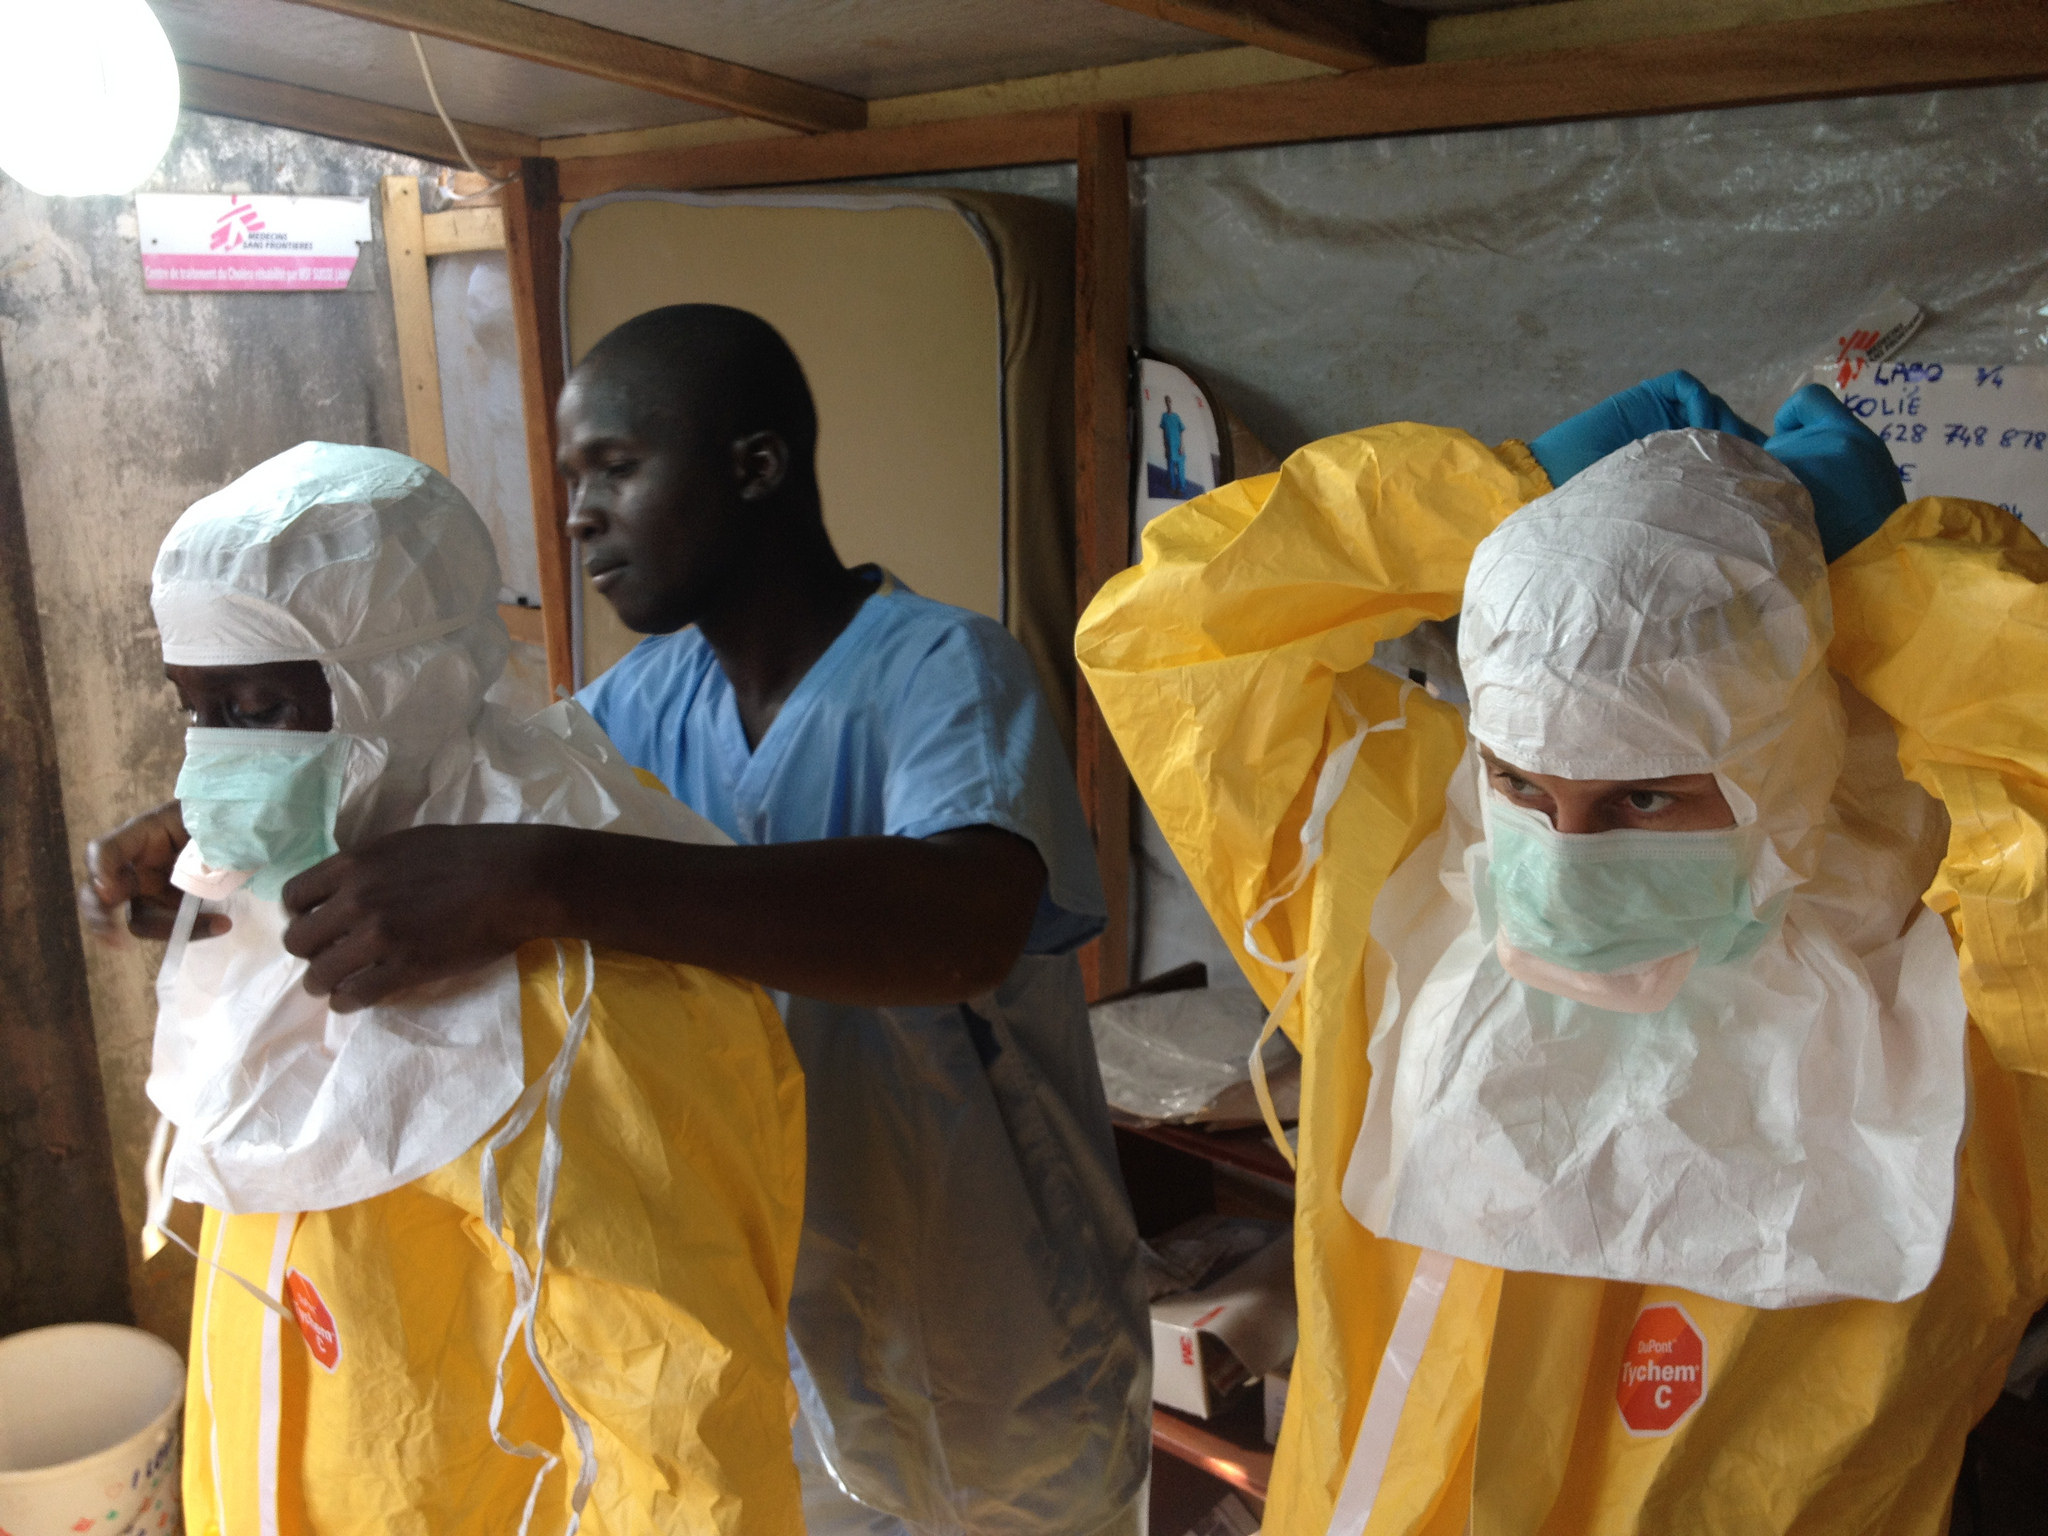 Health care workers in Guinea prepare to treat Ebola patients. By the European Commission DG ECHO.